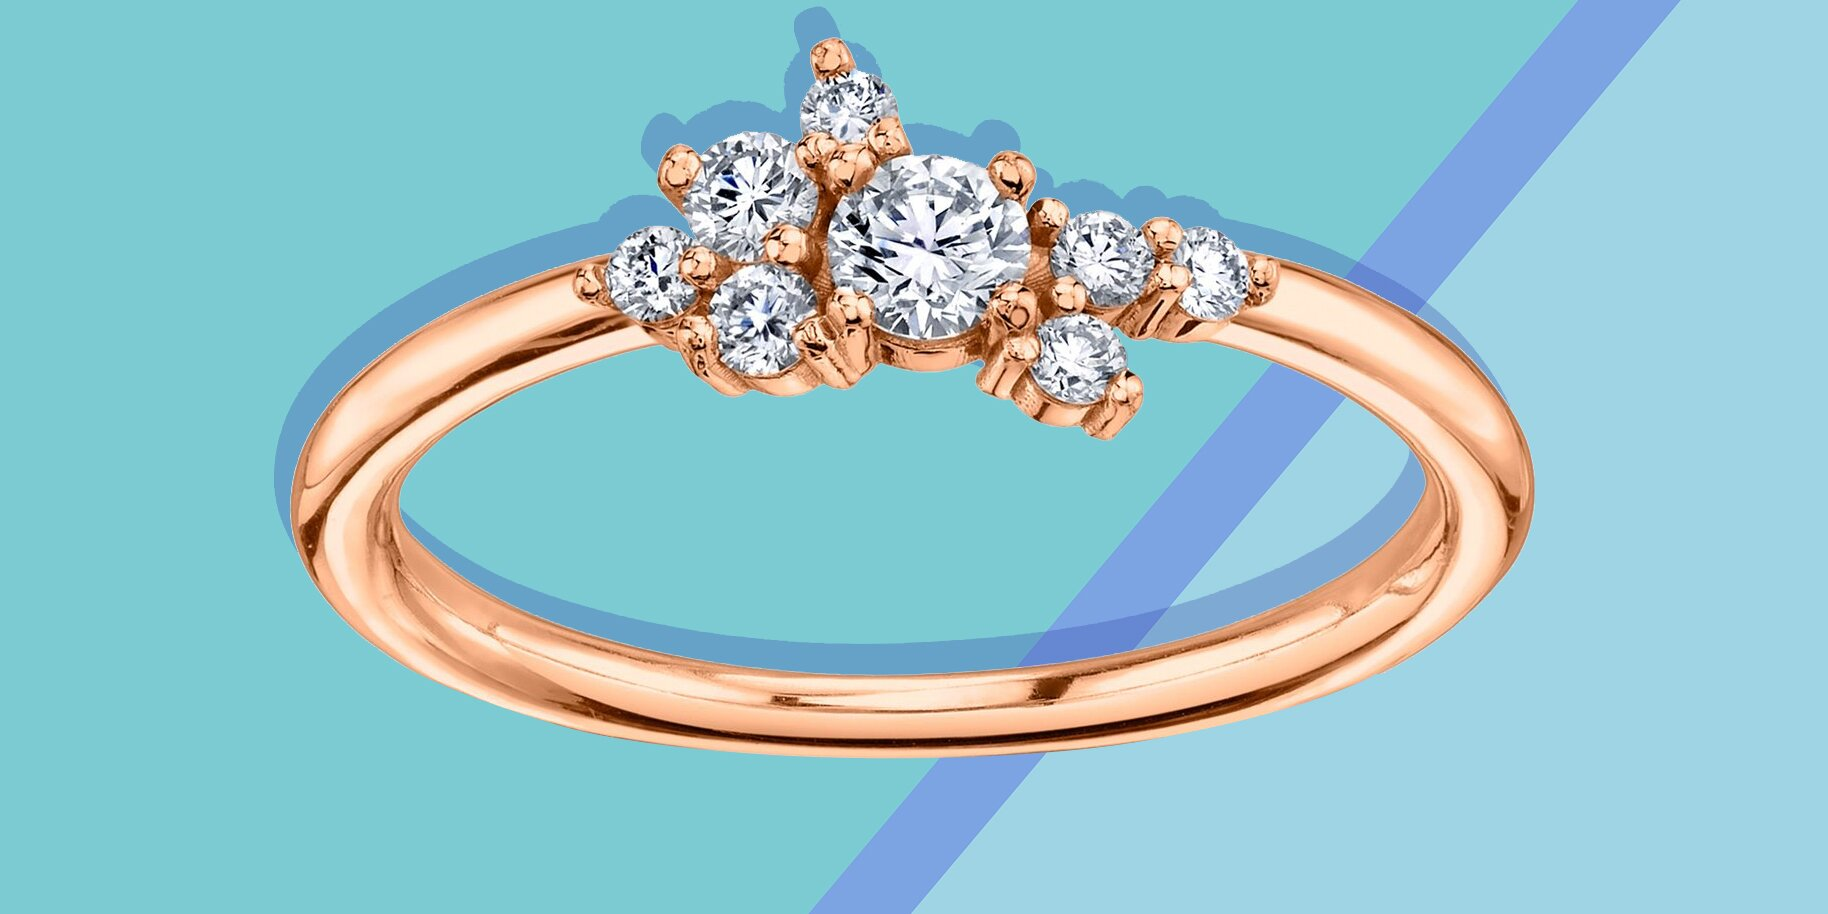 Buy Diamond Rings that Suit her Personality